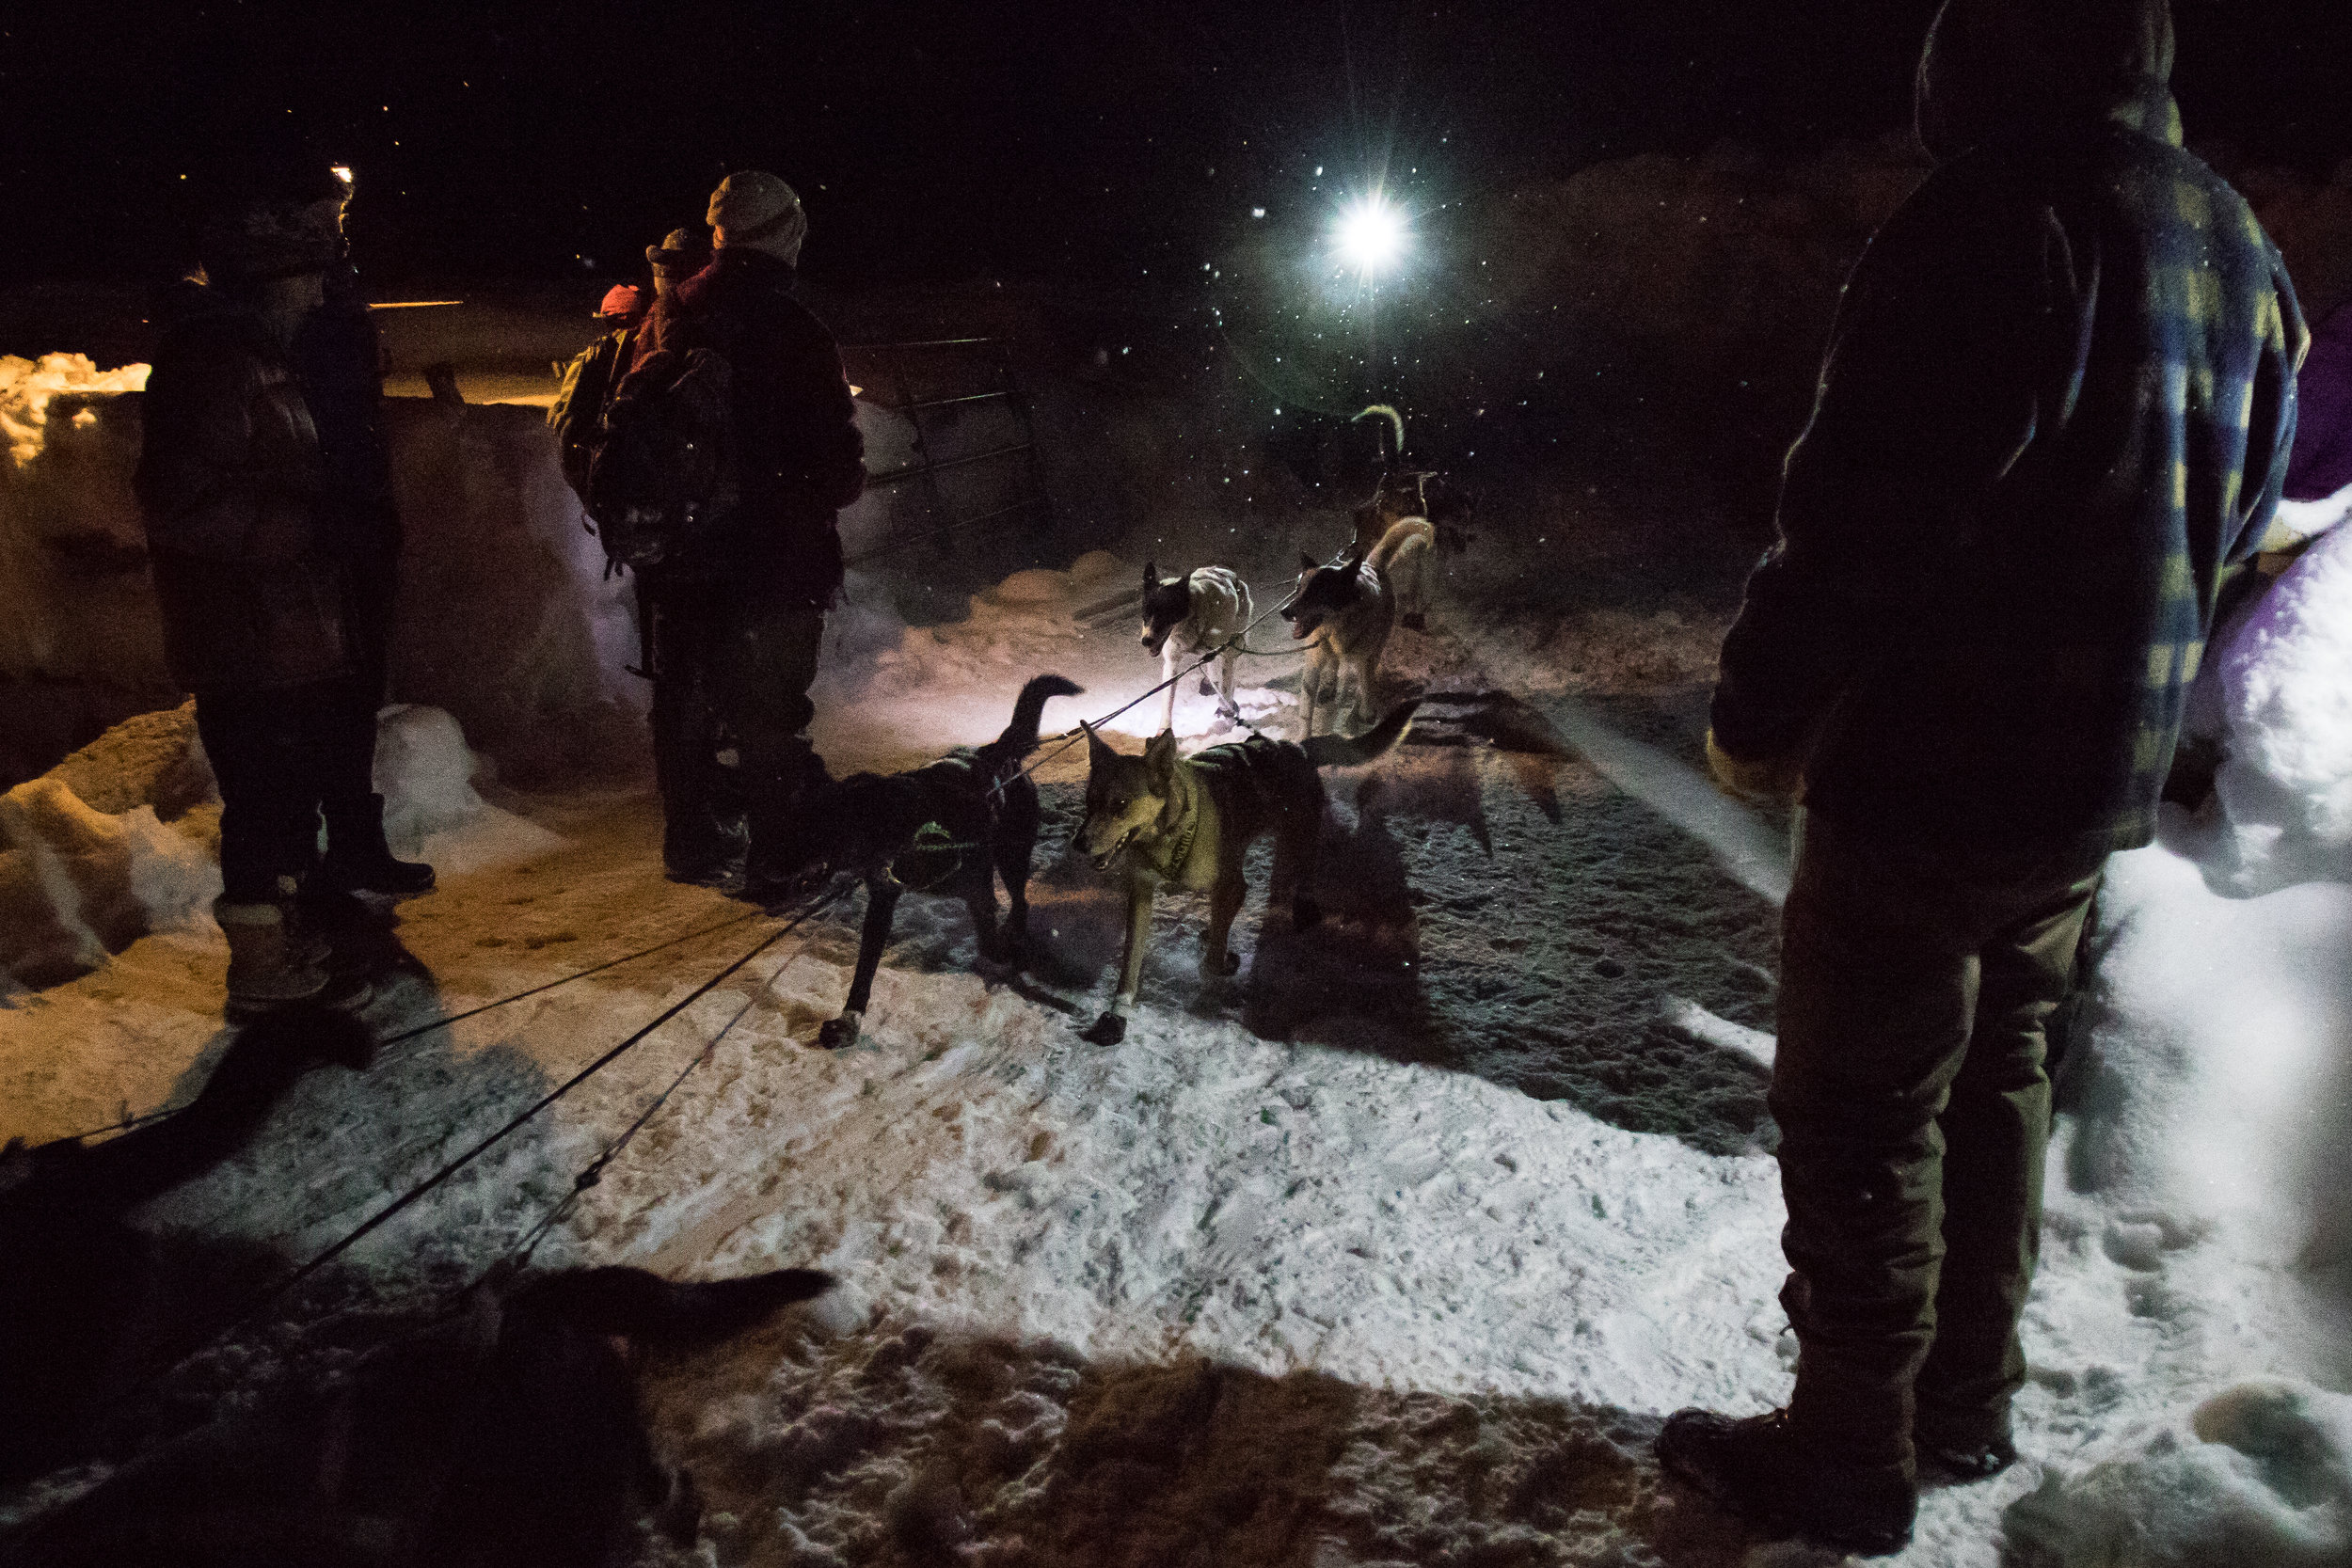 A musher passes checkpoint one at White Tail Ranch late Saturday night, 50 miles from the start of the race. While most mushers took this opportunity to tend to their dogs and take short naps, some teams continued straight through the checkpoint.